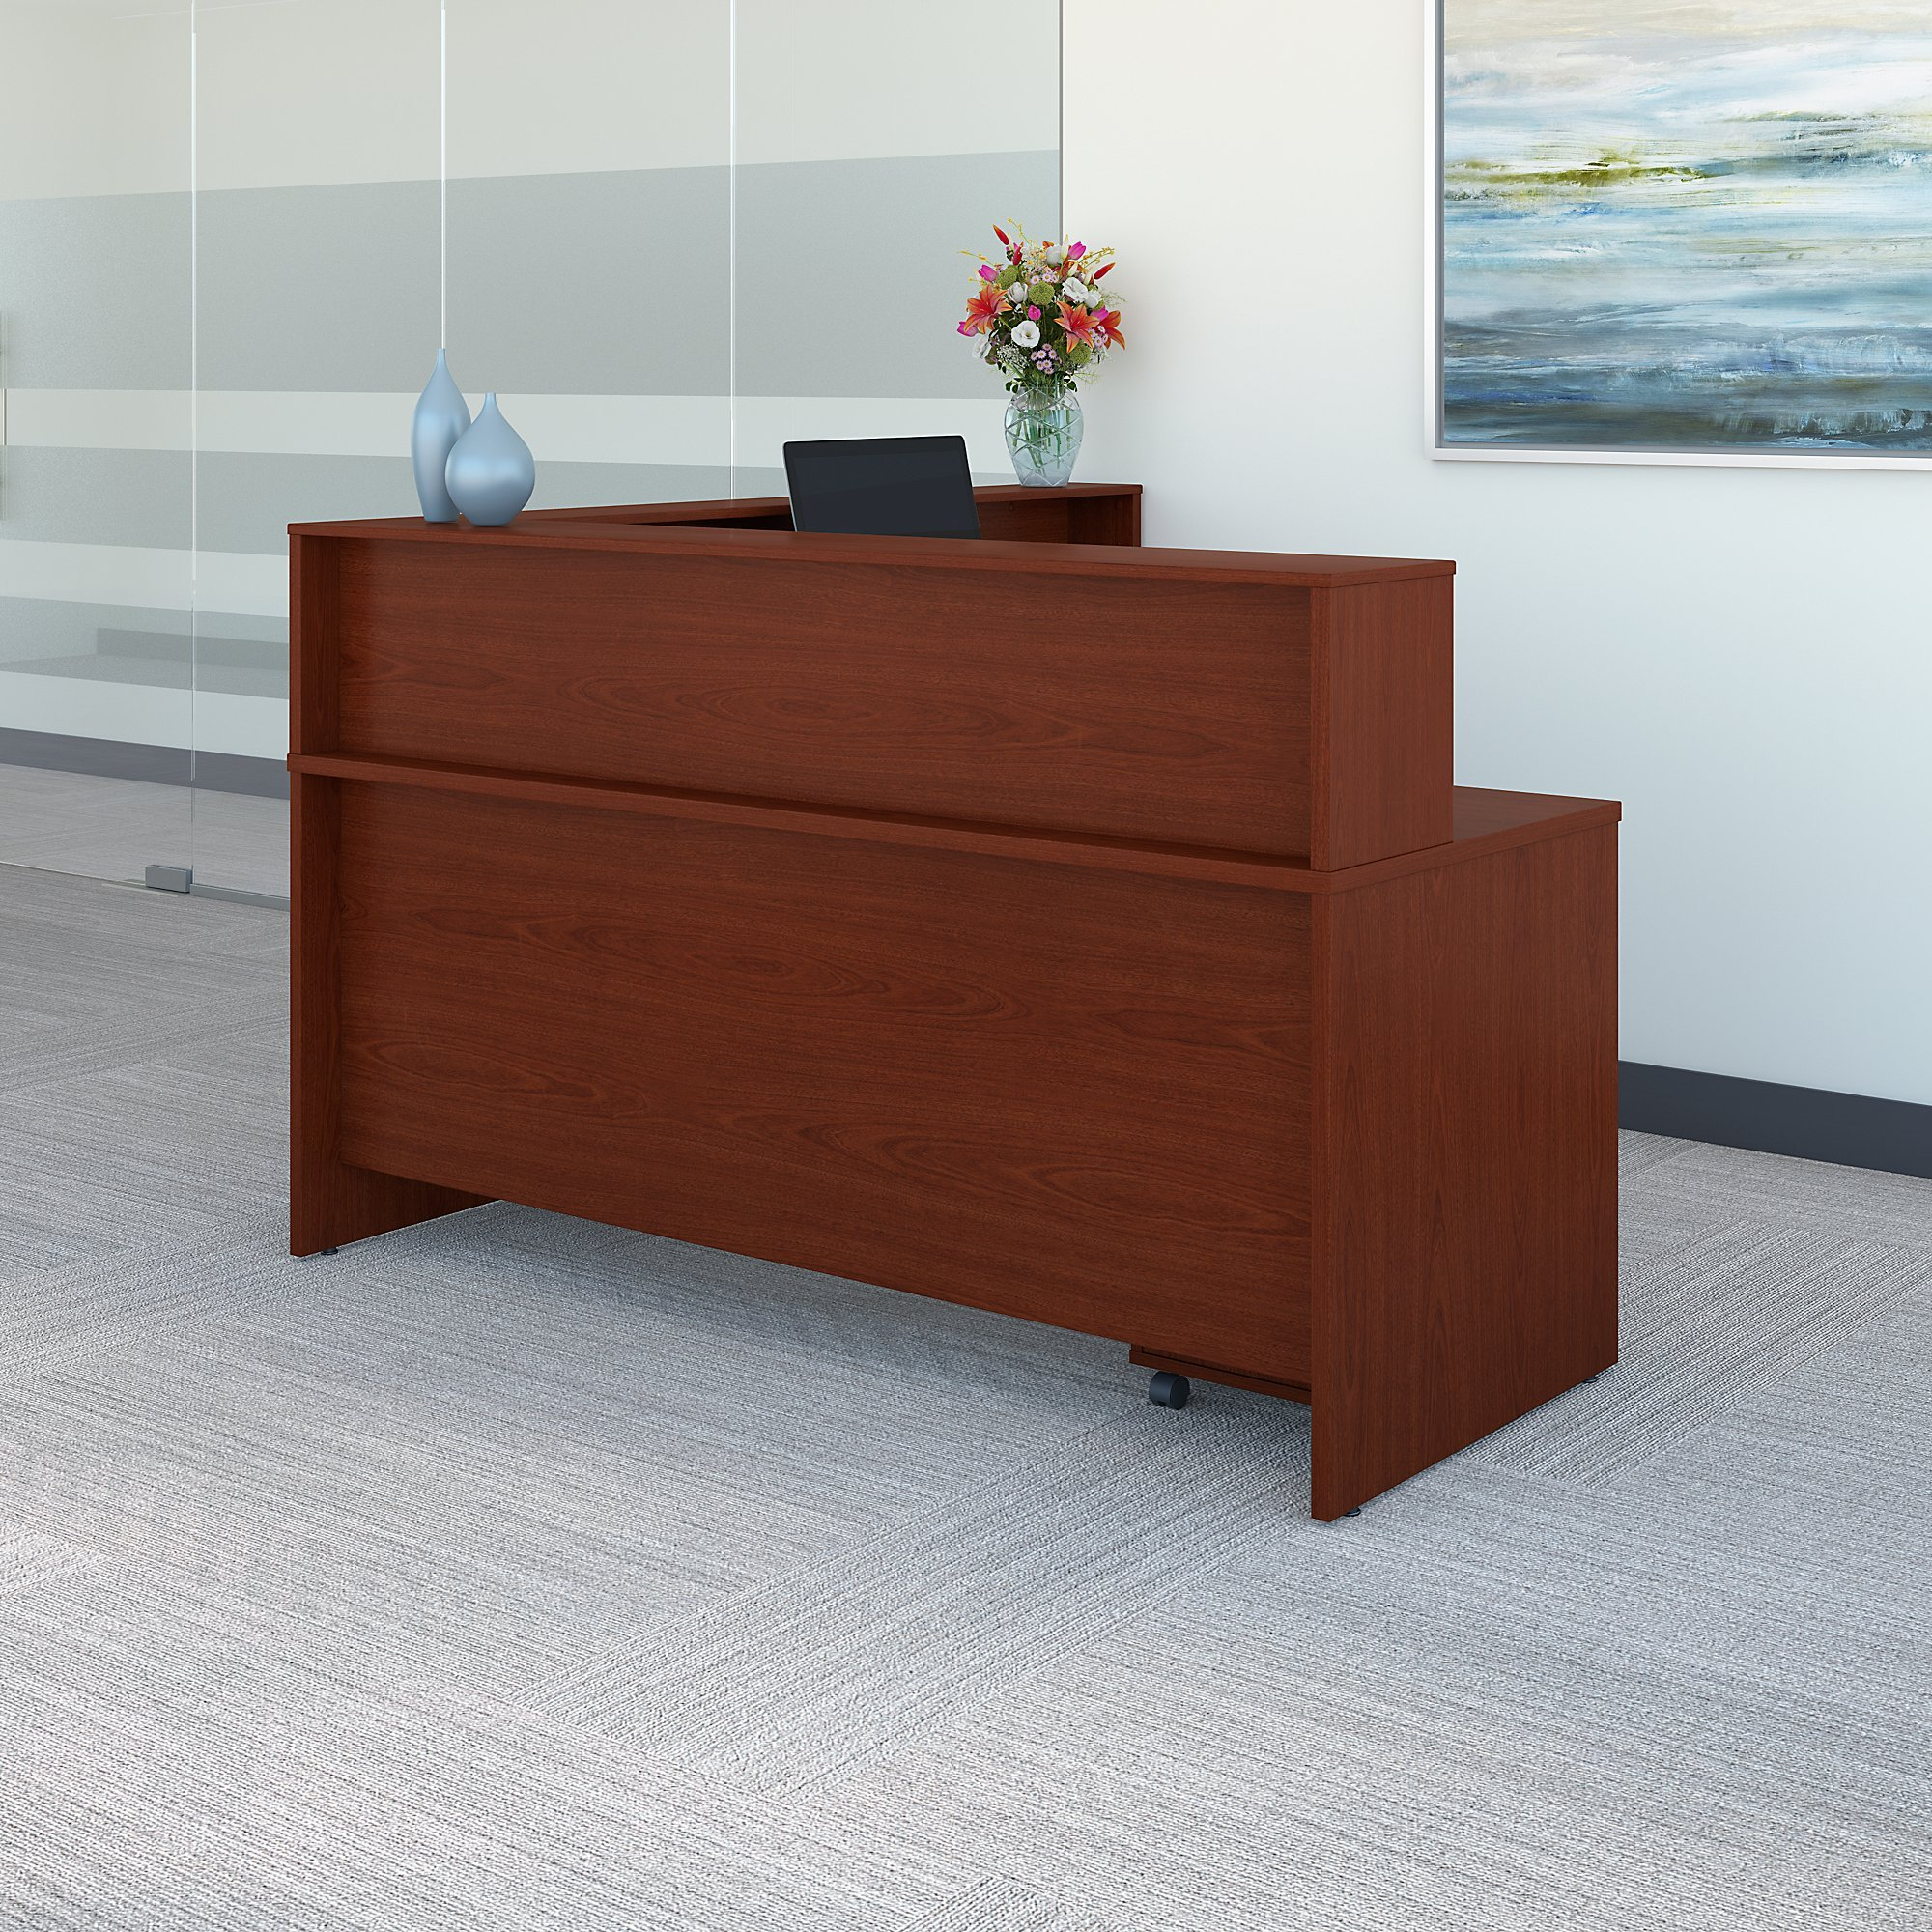 Bush Business Furniture Series C L Shaped Reception Desk with Mobile File Cabinet in Mahogany by Bush Business Furniture (Image #3)